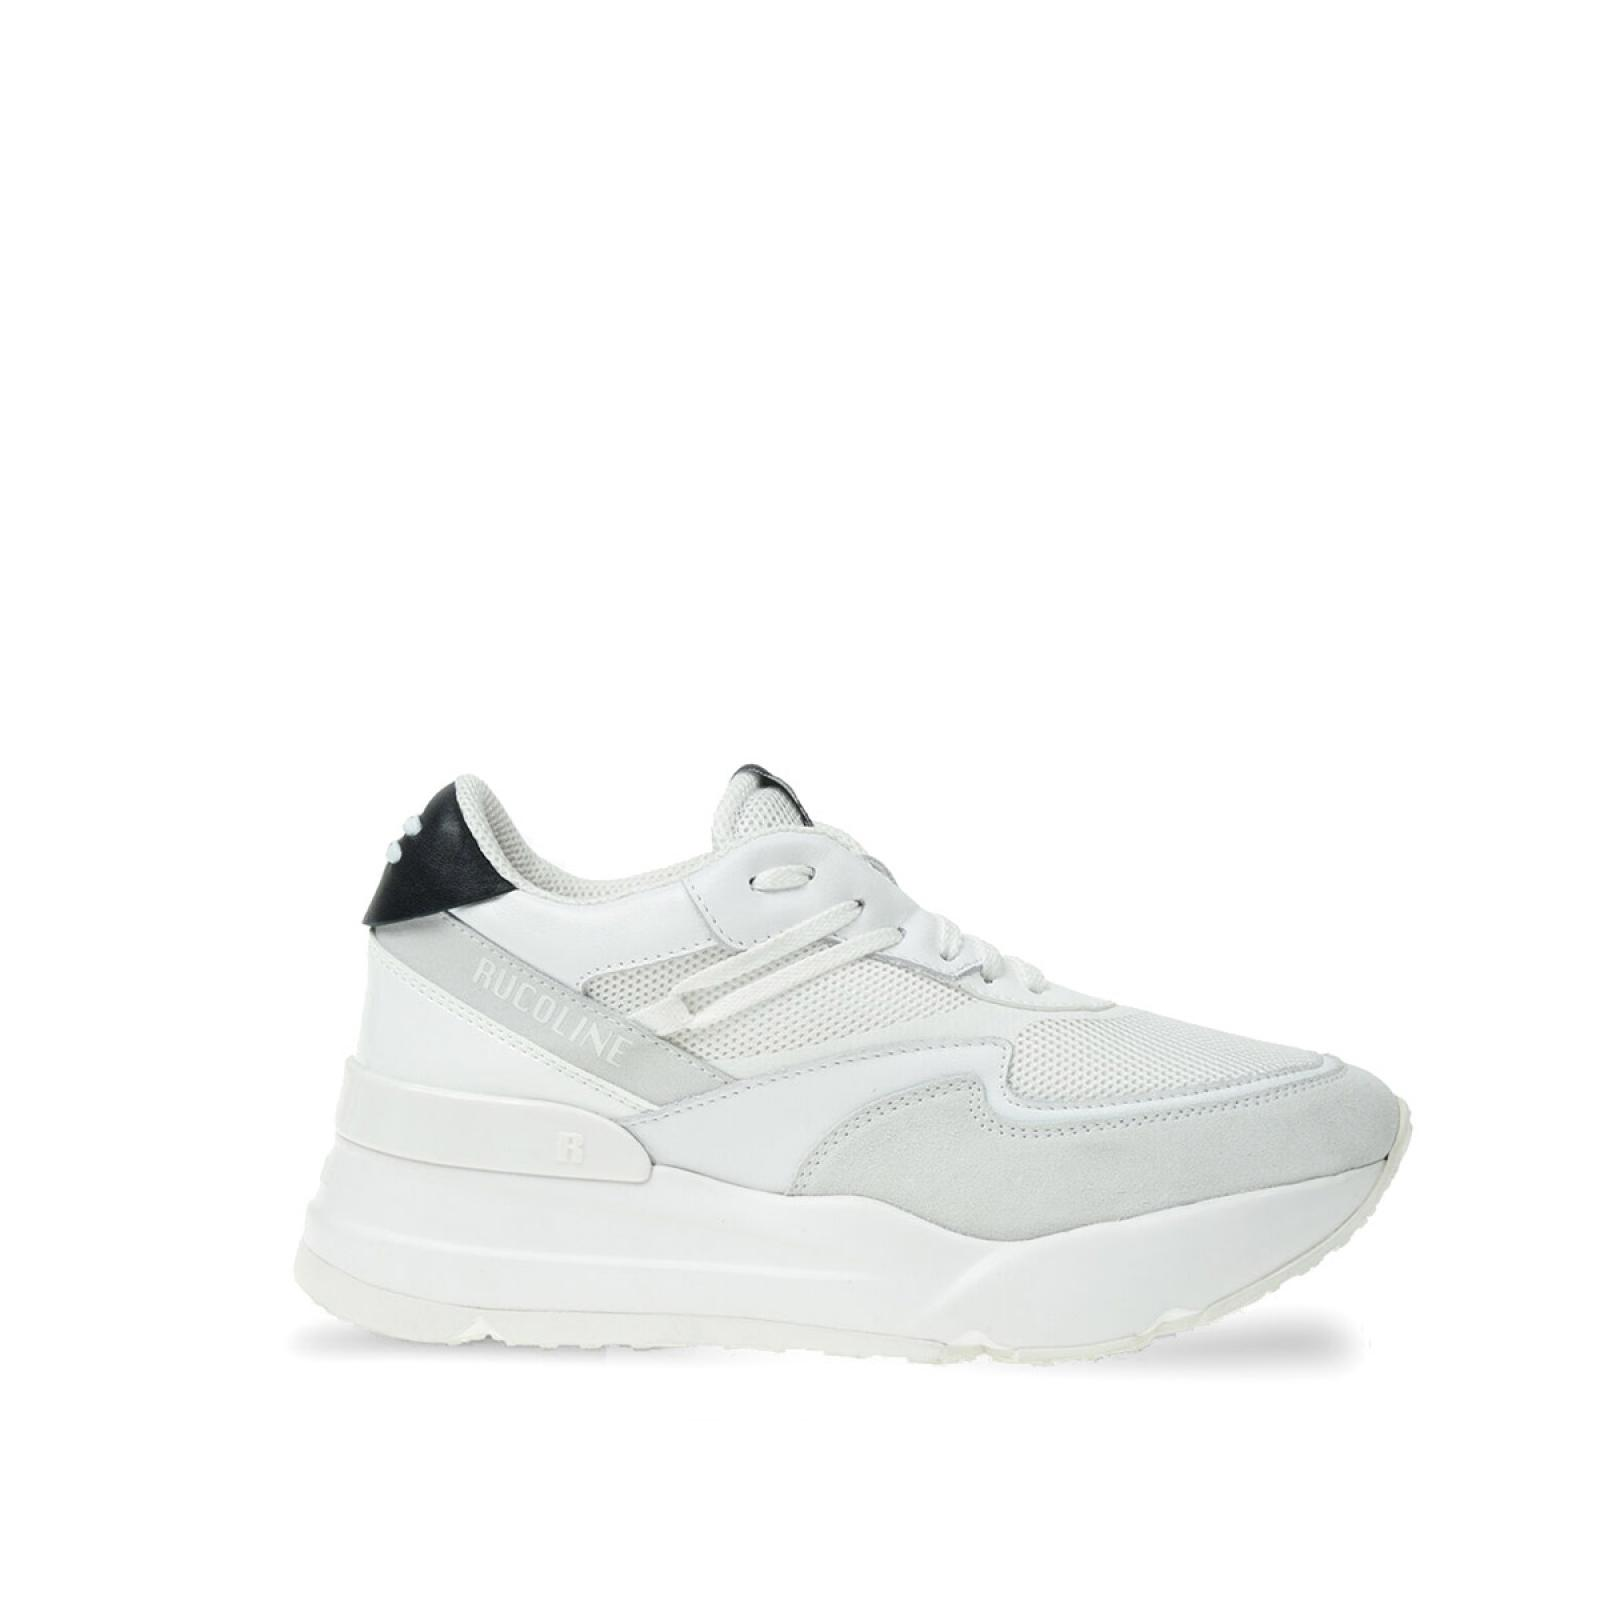 RUCO Sneakers R-Evolve 4043 AT 730 - 1